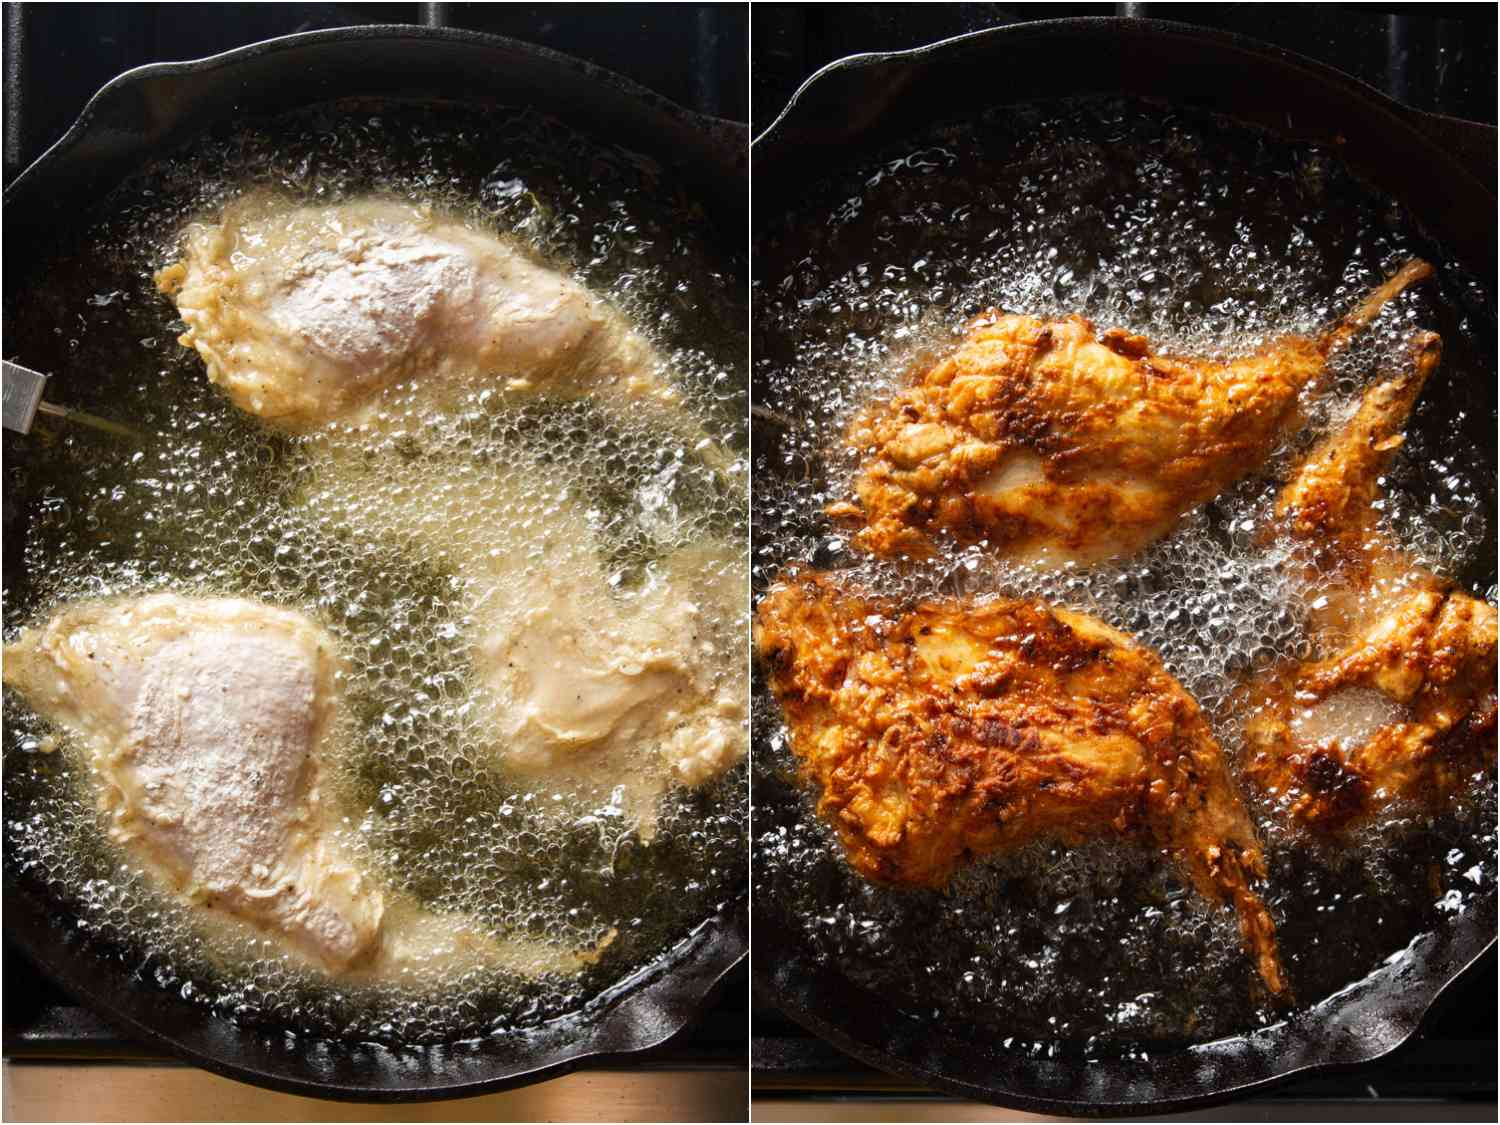 Collage of two photos of brined and dredged rabbit pieces being fried in a cast iron skillet